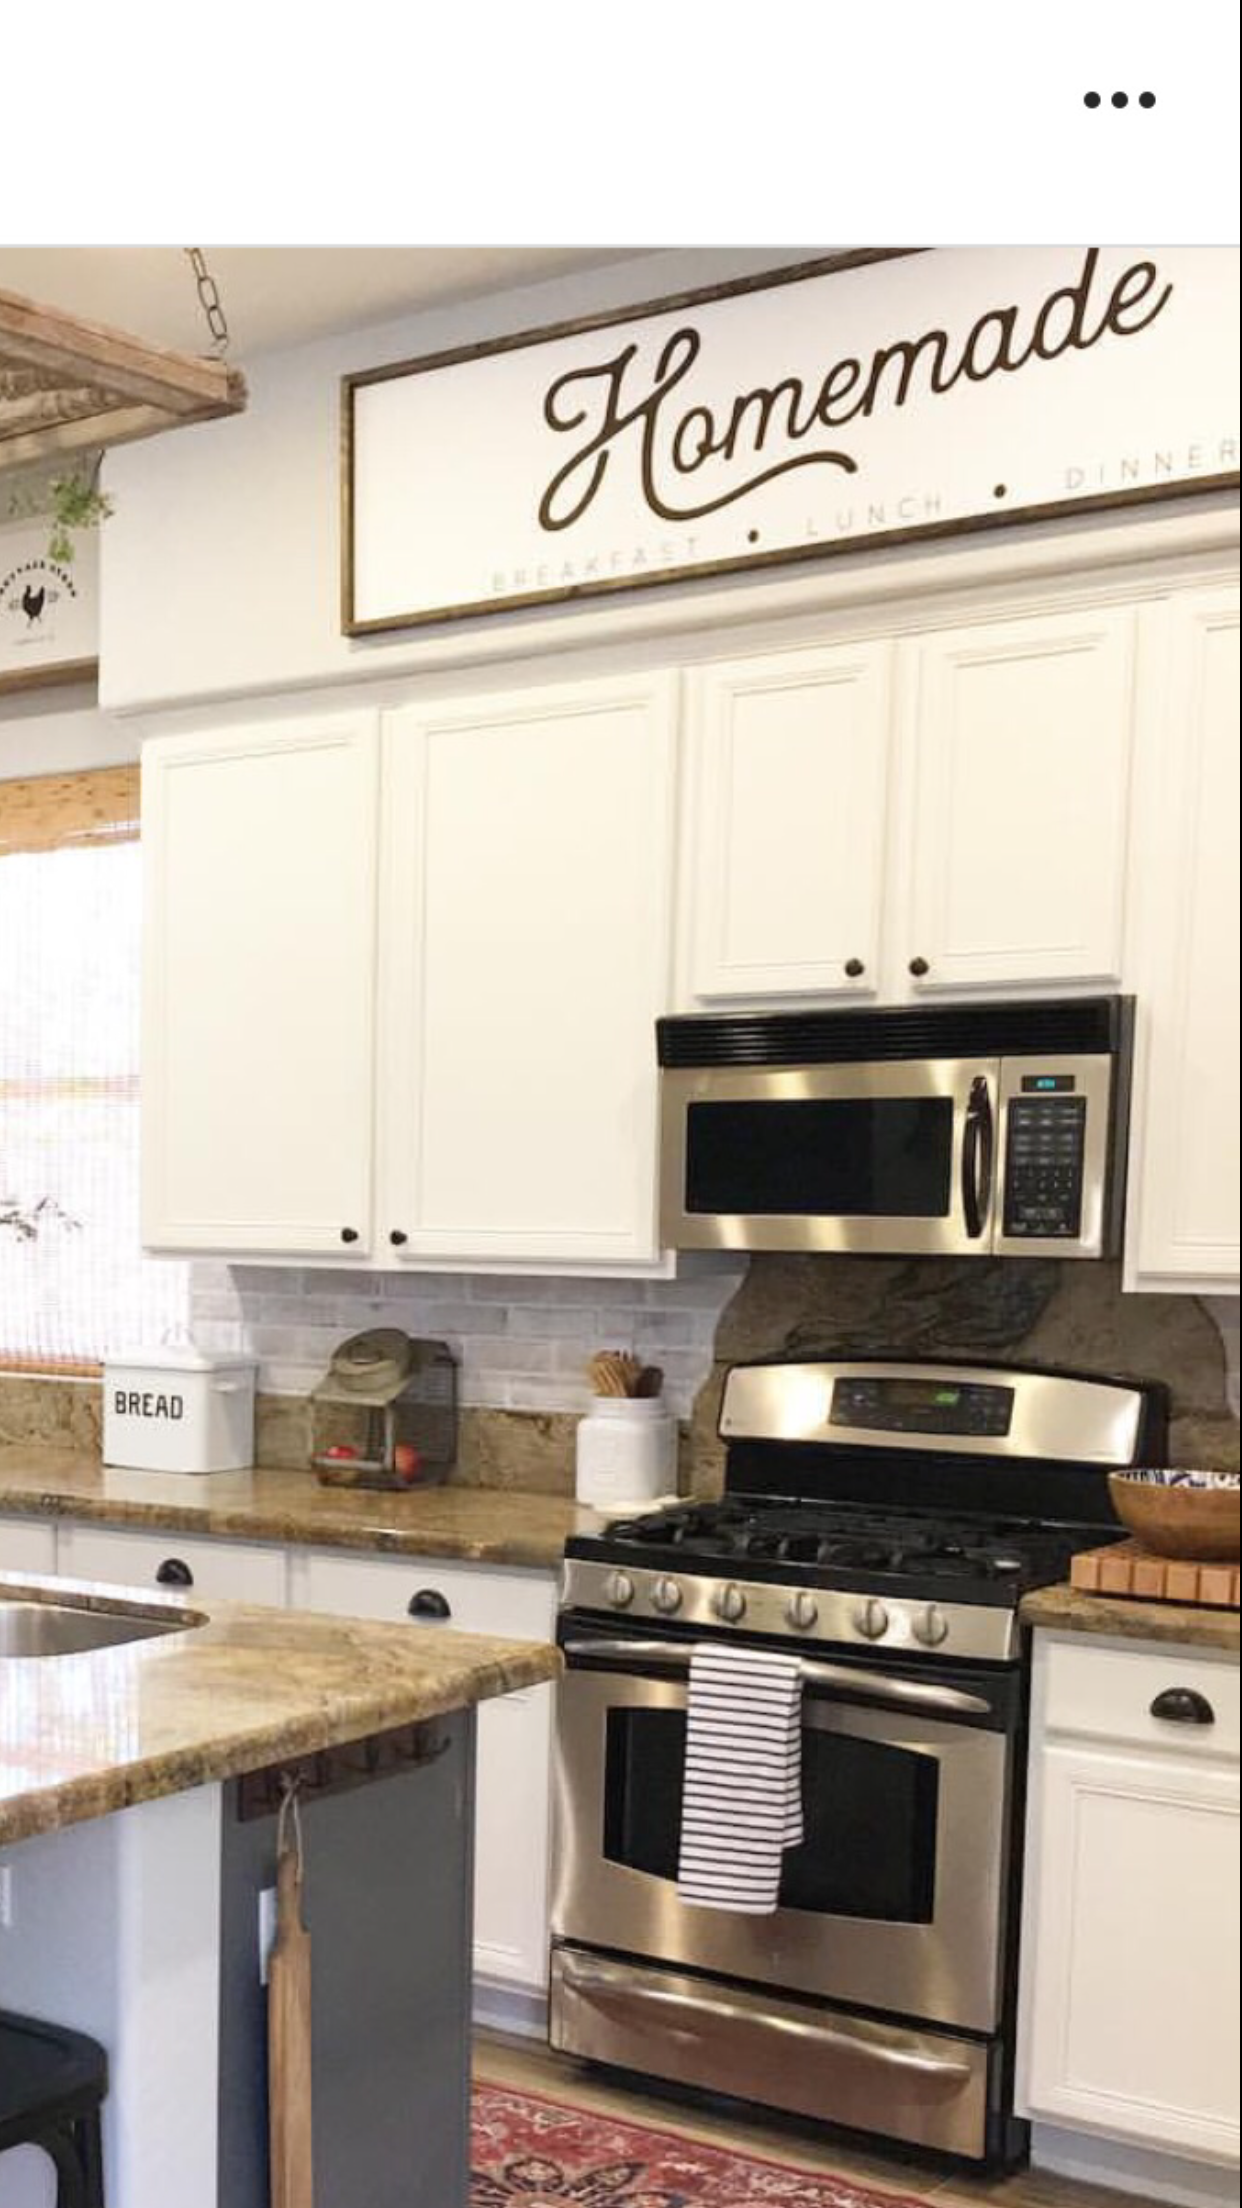 Pin By Crystal Noble On Silhouette Projects Kitchen Cabinets Decor Home Decor